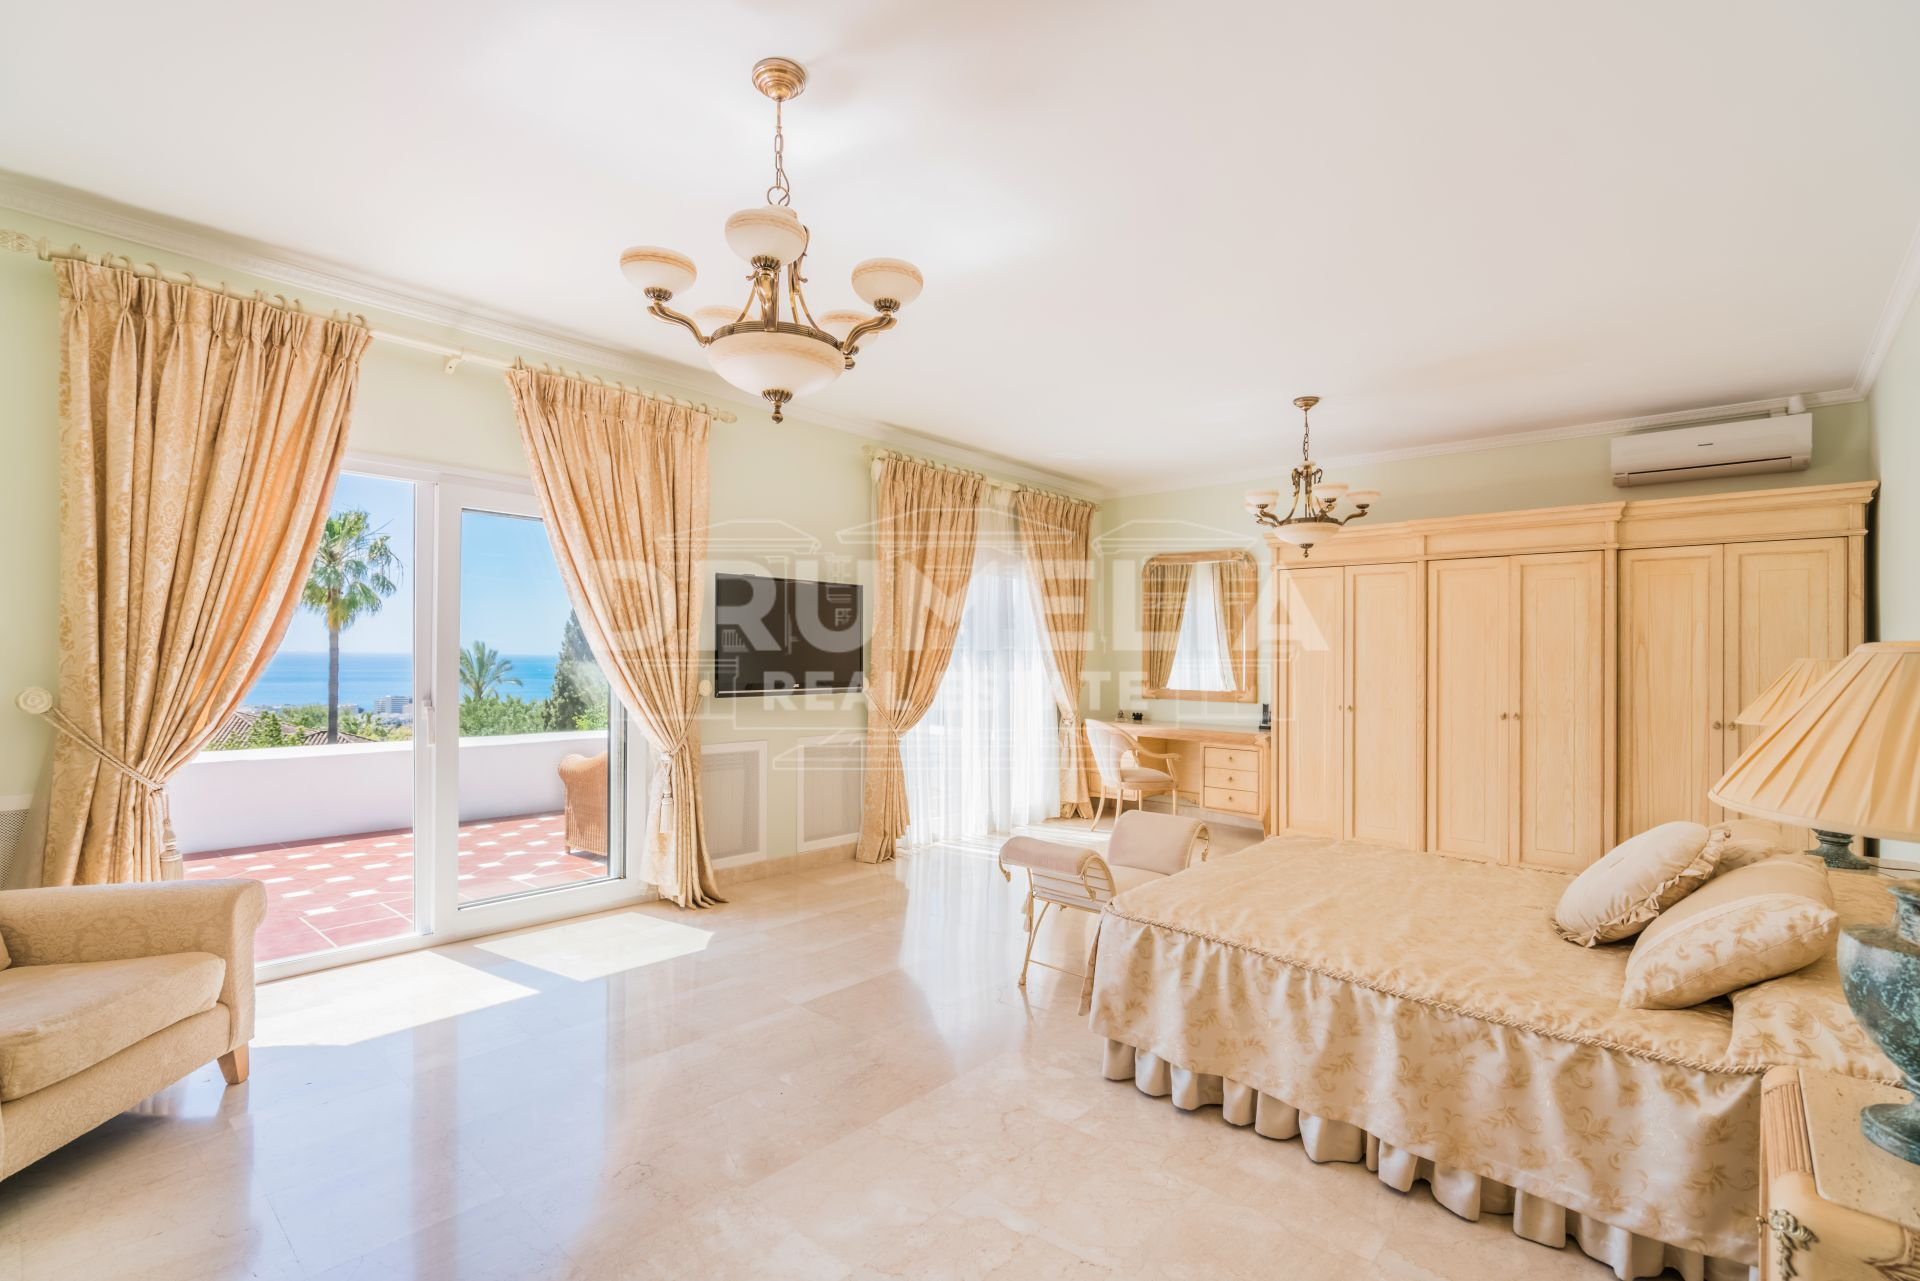 Marbella Golden Mile, Elegant Luxury Villa, Sierra Blanca area, Marbella Golden Mile